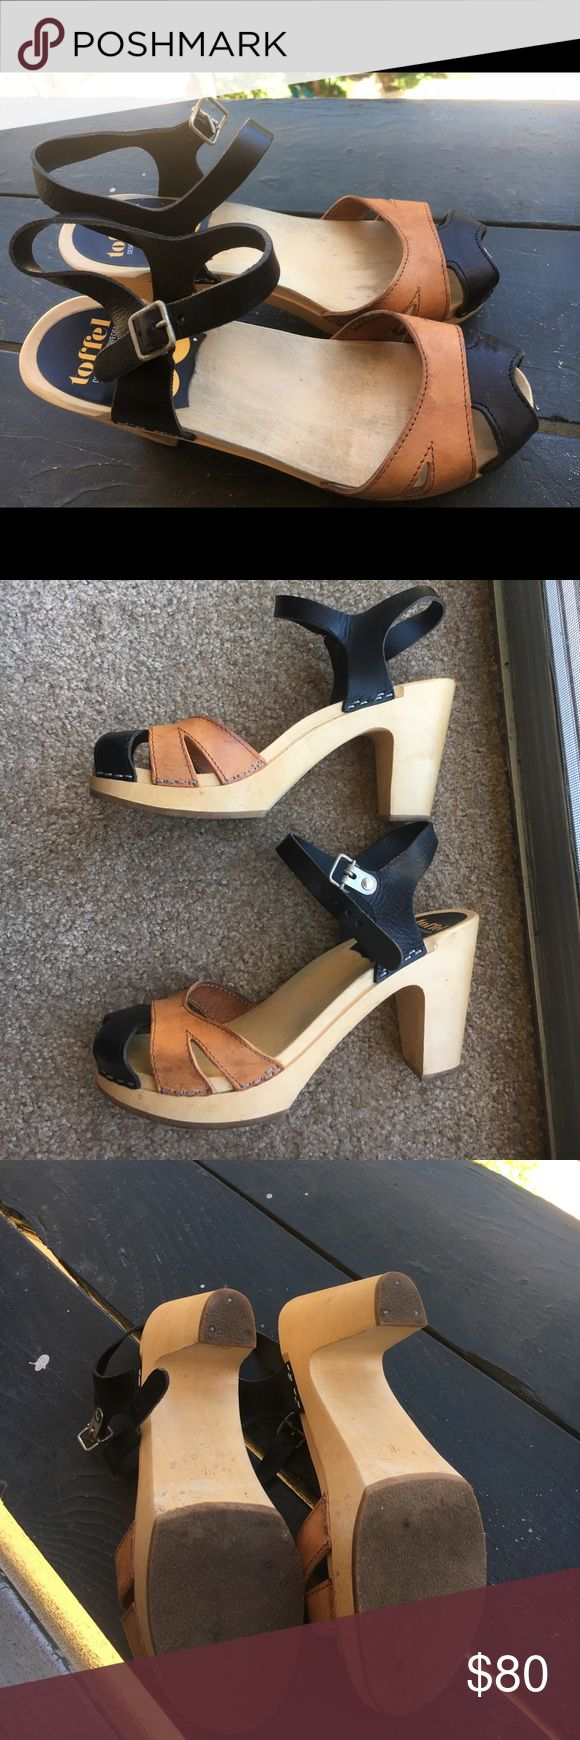 """Swedish Hasbeens Suzanne Black and Tan high heel 3 1/2"""" heel. Fits 7.5-8. Twice-worn pair of Swedish Hasbeens. Slight watermarks on tan of each shoe. Swedish Hasbeens Shoes Sandals"""